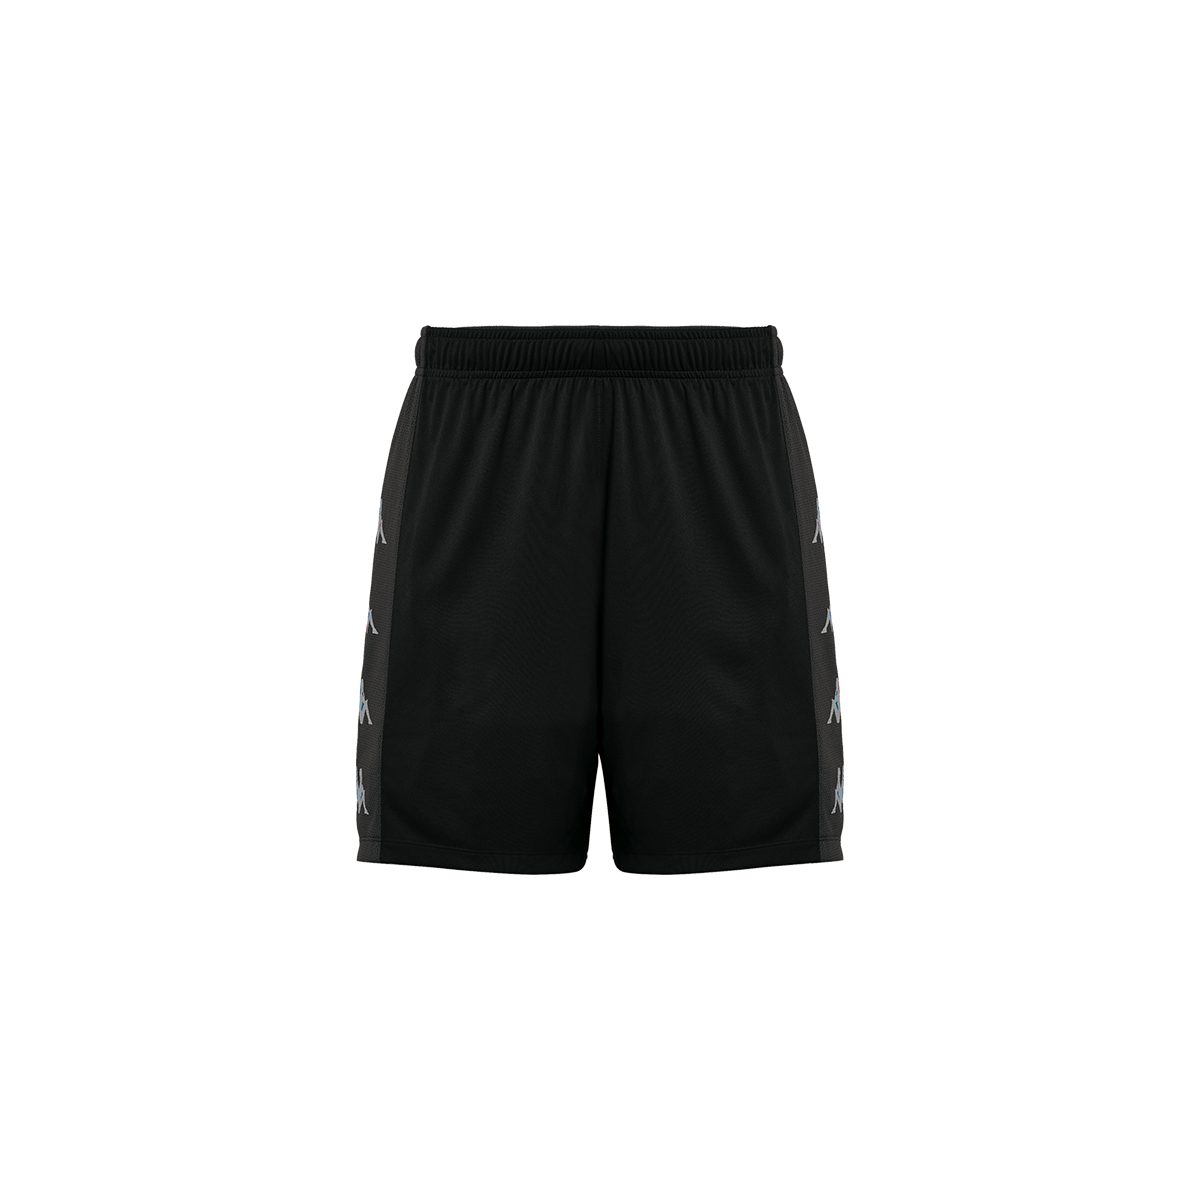 Kappa Delebio Match Short - Black/Grey DK